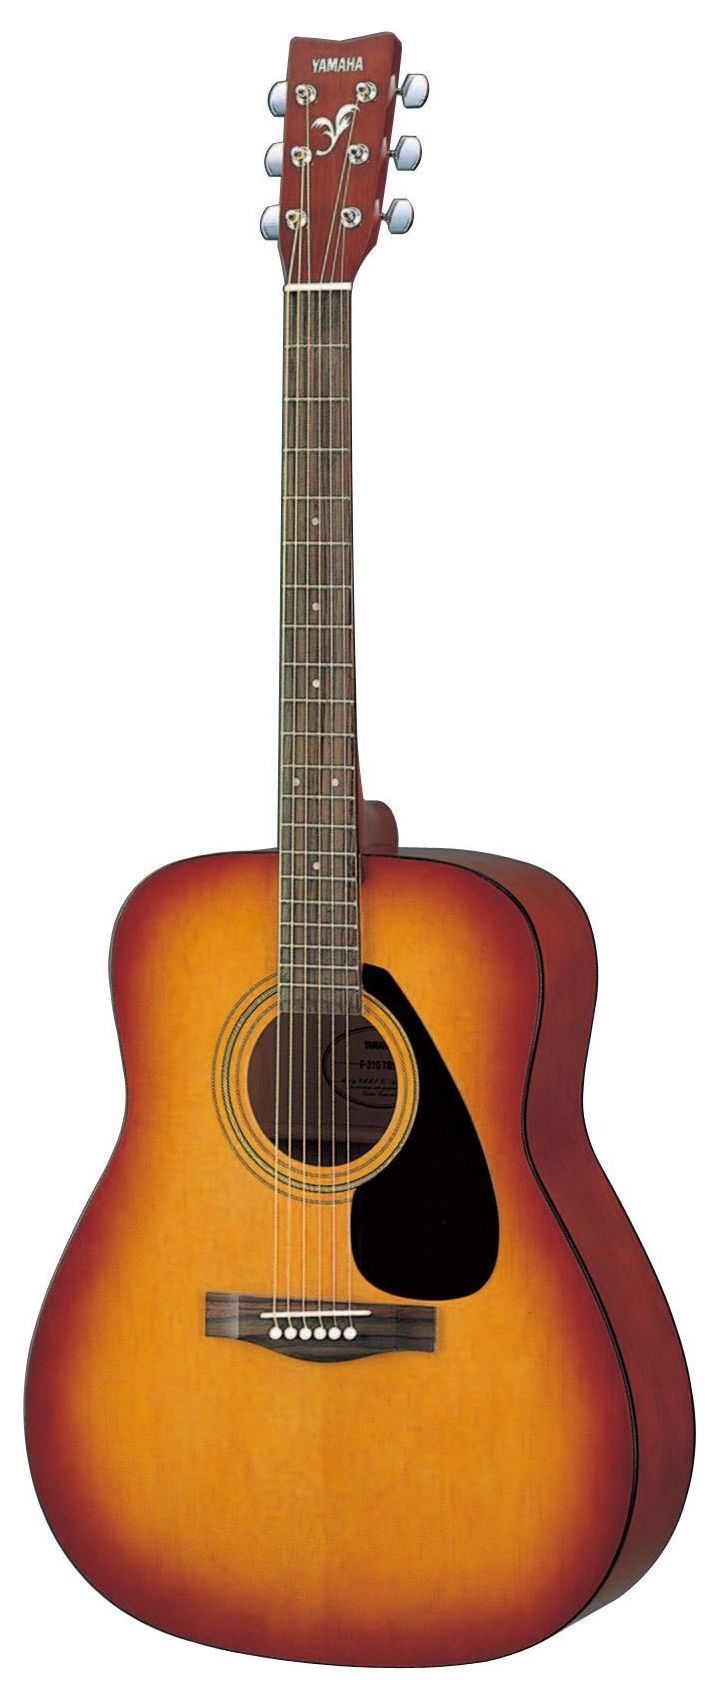 Violão Yamaha F310 - Tobacco Brown Sunburst